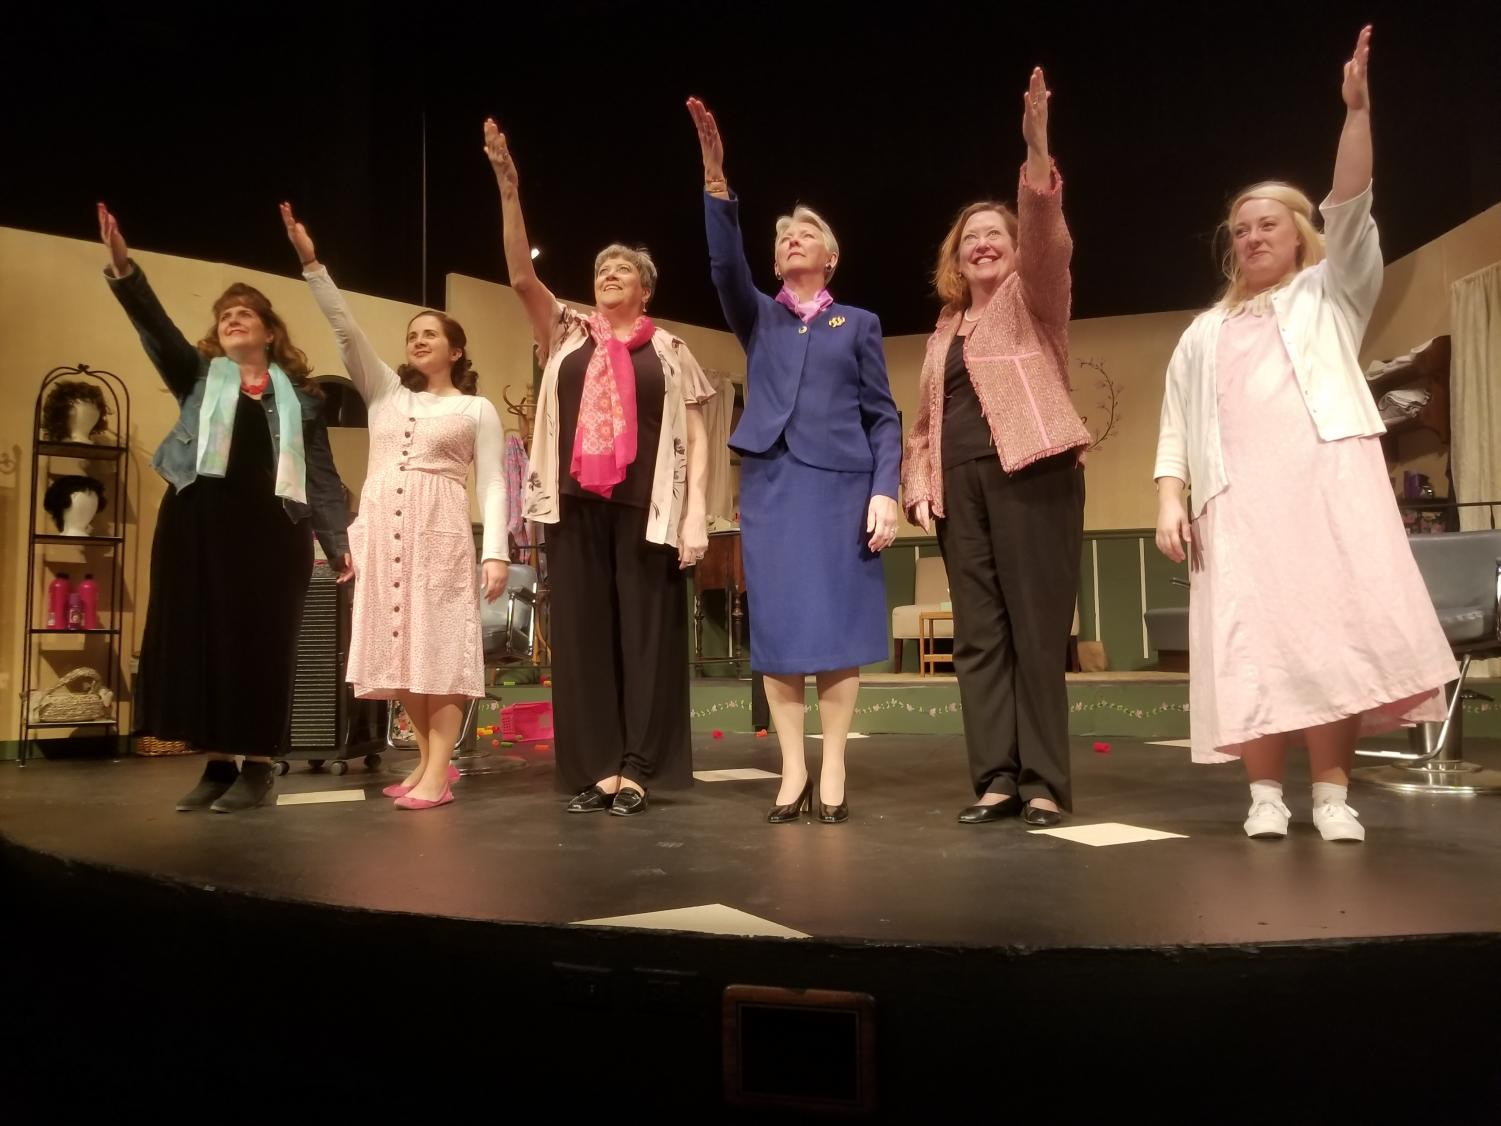 The cast of Steele Magnolias, in order from left to right: Truvy, played by Shelly Richards; Shelby, played by Kim Hentges; Ouiser, played by Vicki Kerns; Clairee, played by Linda Levin; M'Lynn, played by Nancy Nail; and Annelle, played by Gina Drapela